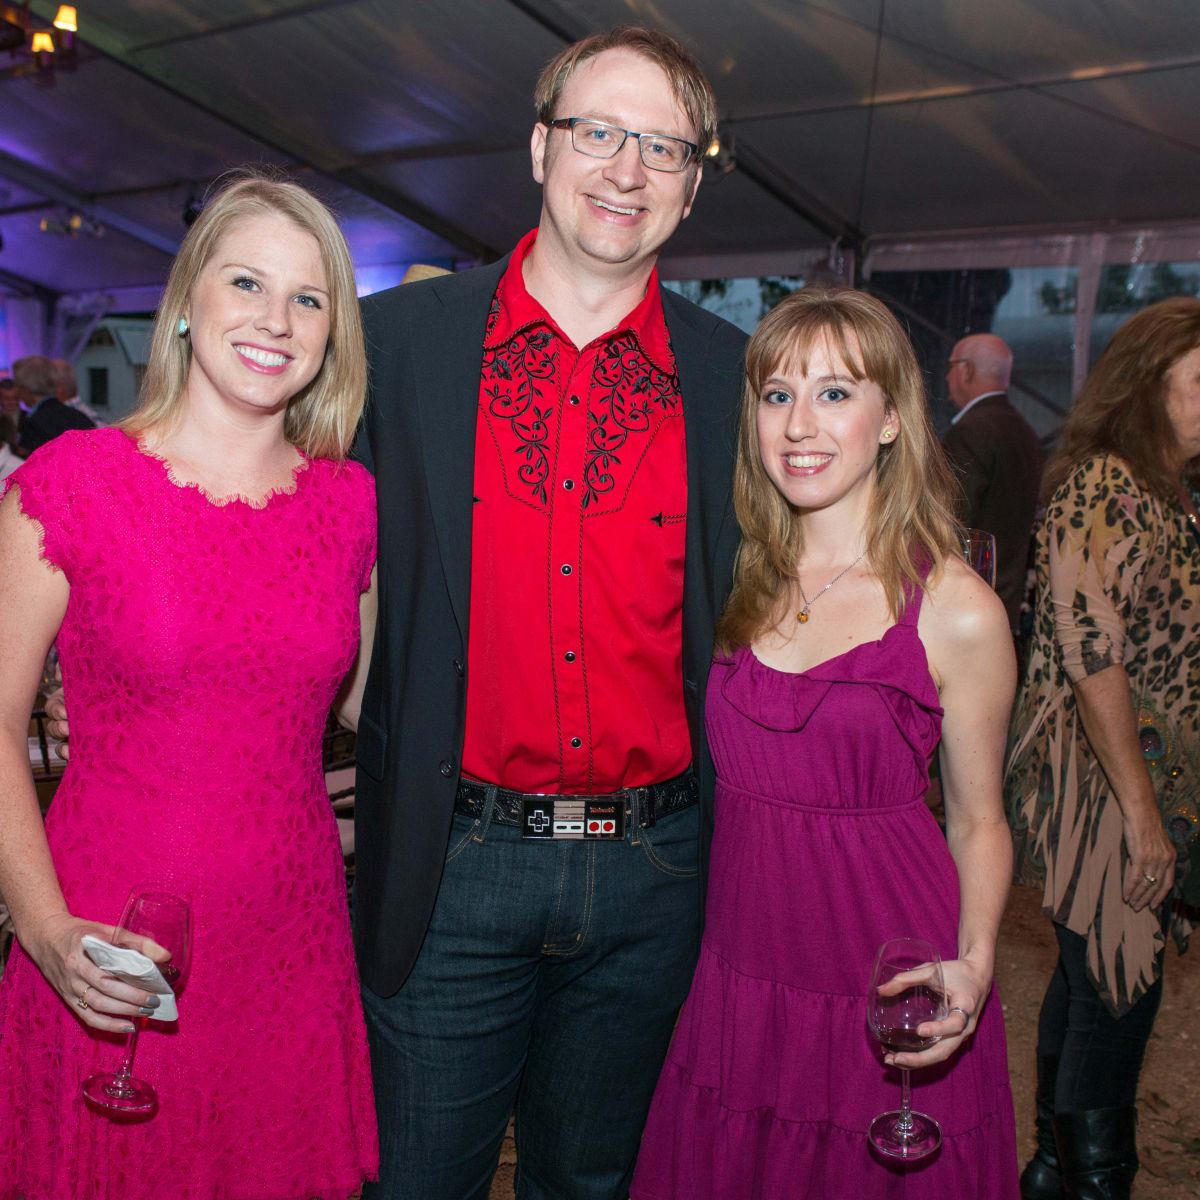 News, shelby, Nature Conservancy gala, Oct. 2015, Rachel Wilson, Jonathan Parker, Hannah Ricks